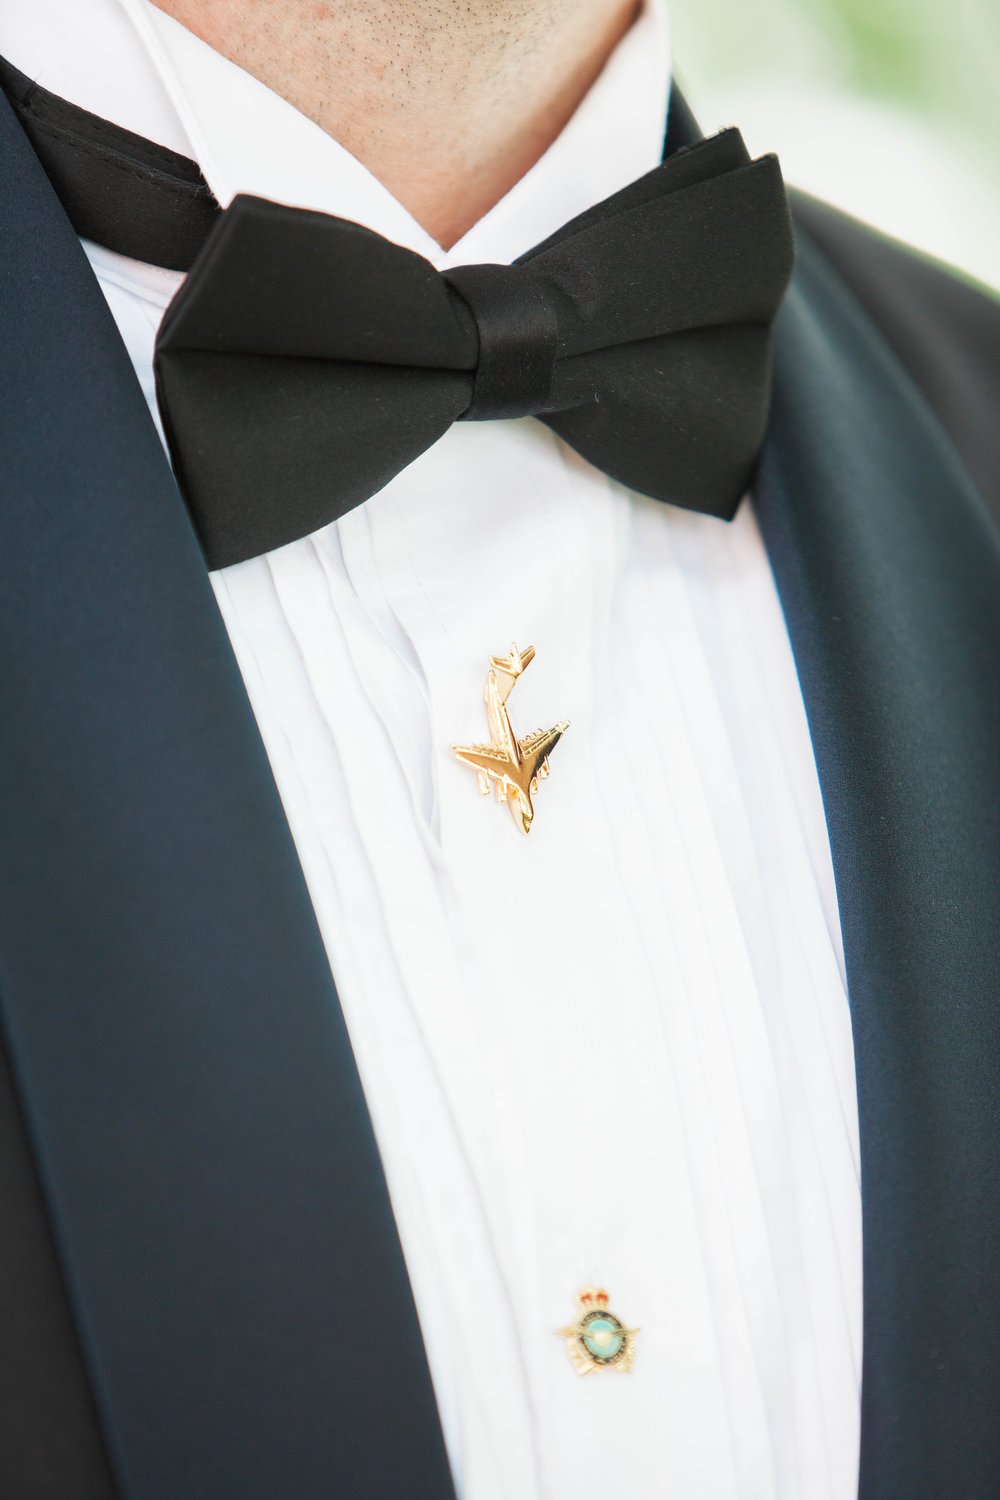 Groom's army suit details